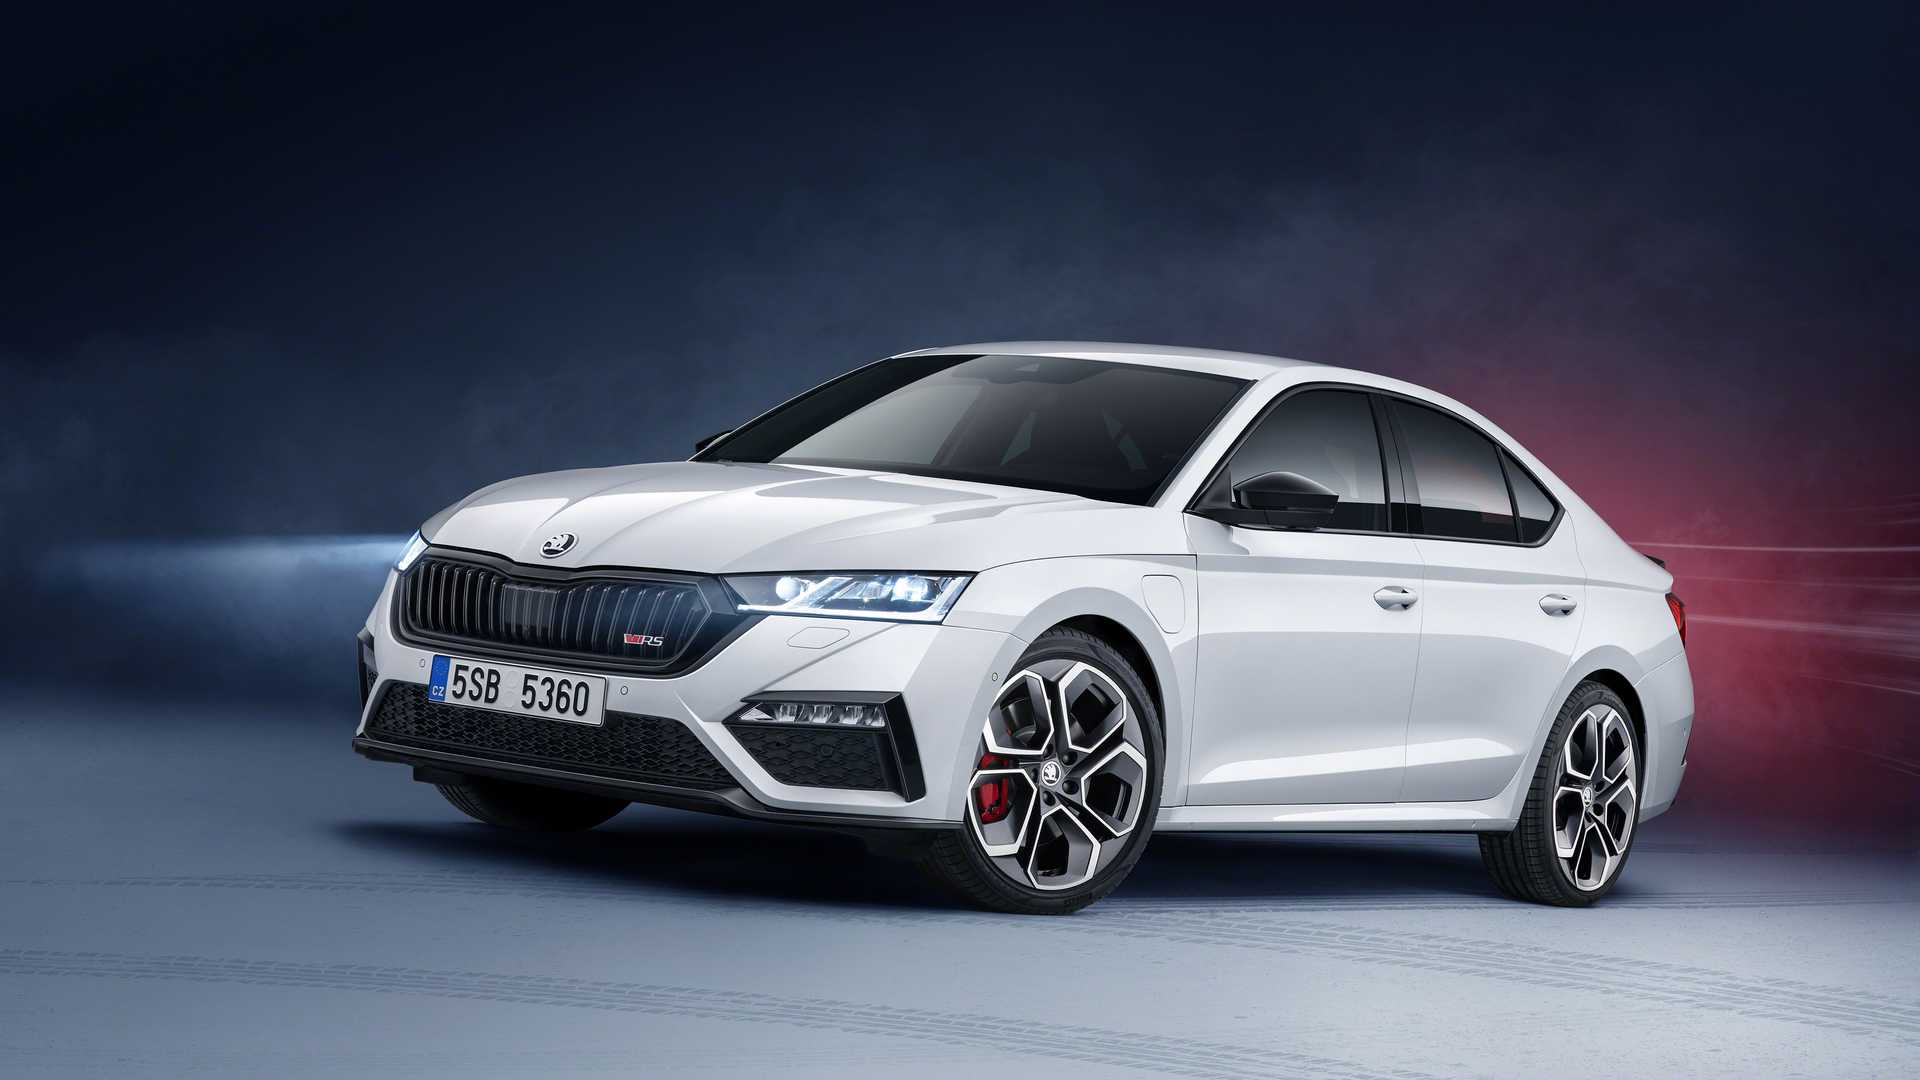 Skoda Octavia RS News and Reviews | Motor1.com UK